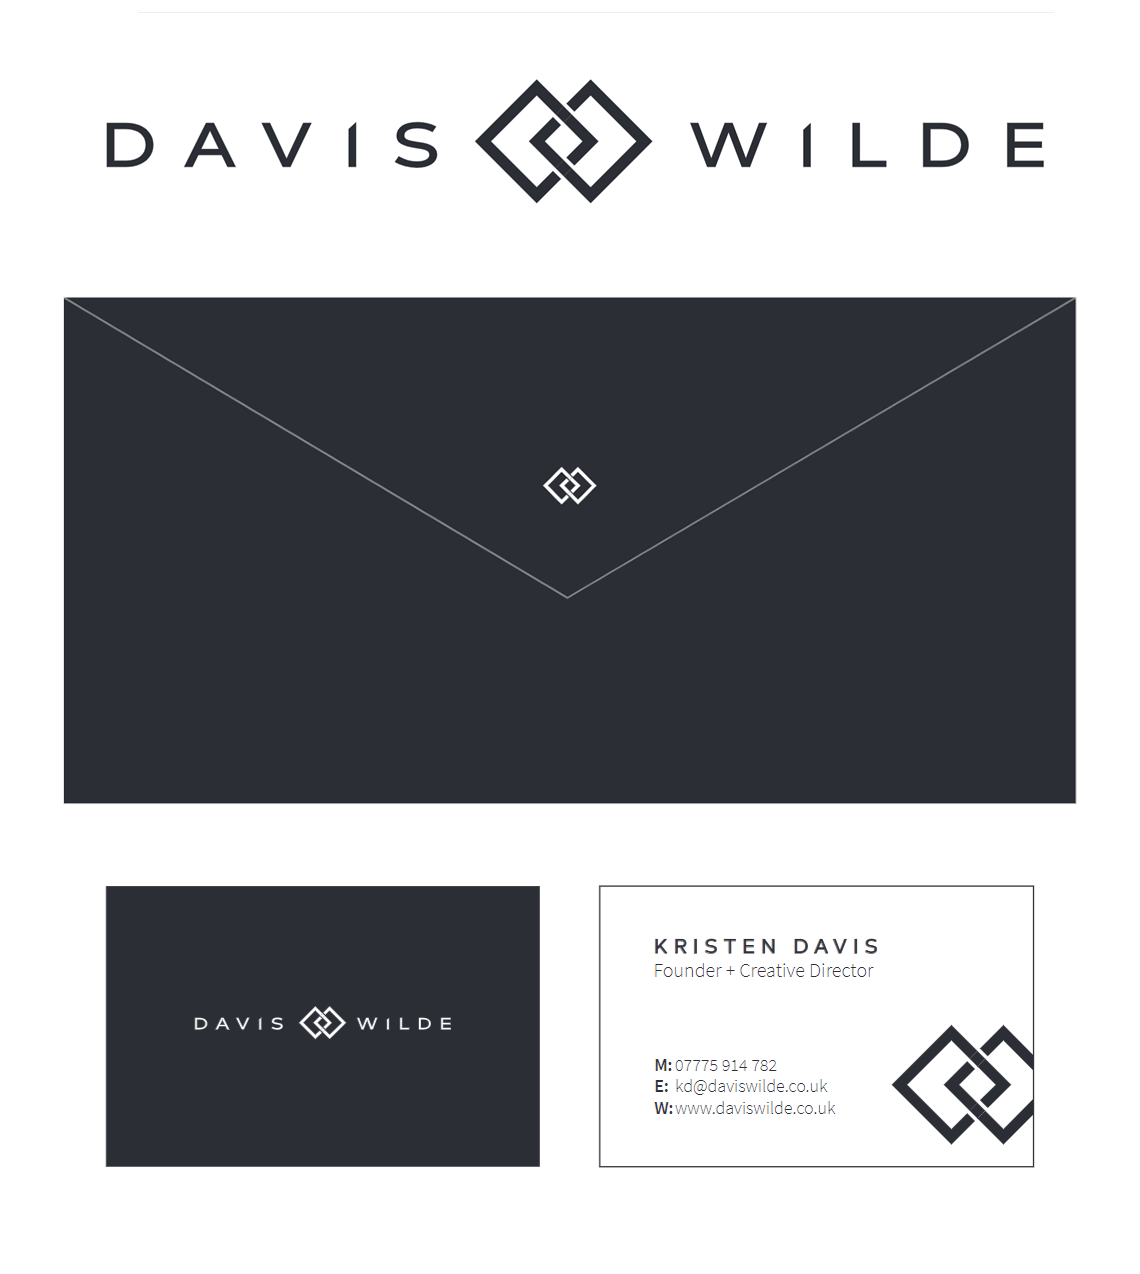 Davis Wilde Logo Branding Corporate Identity Design